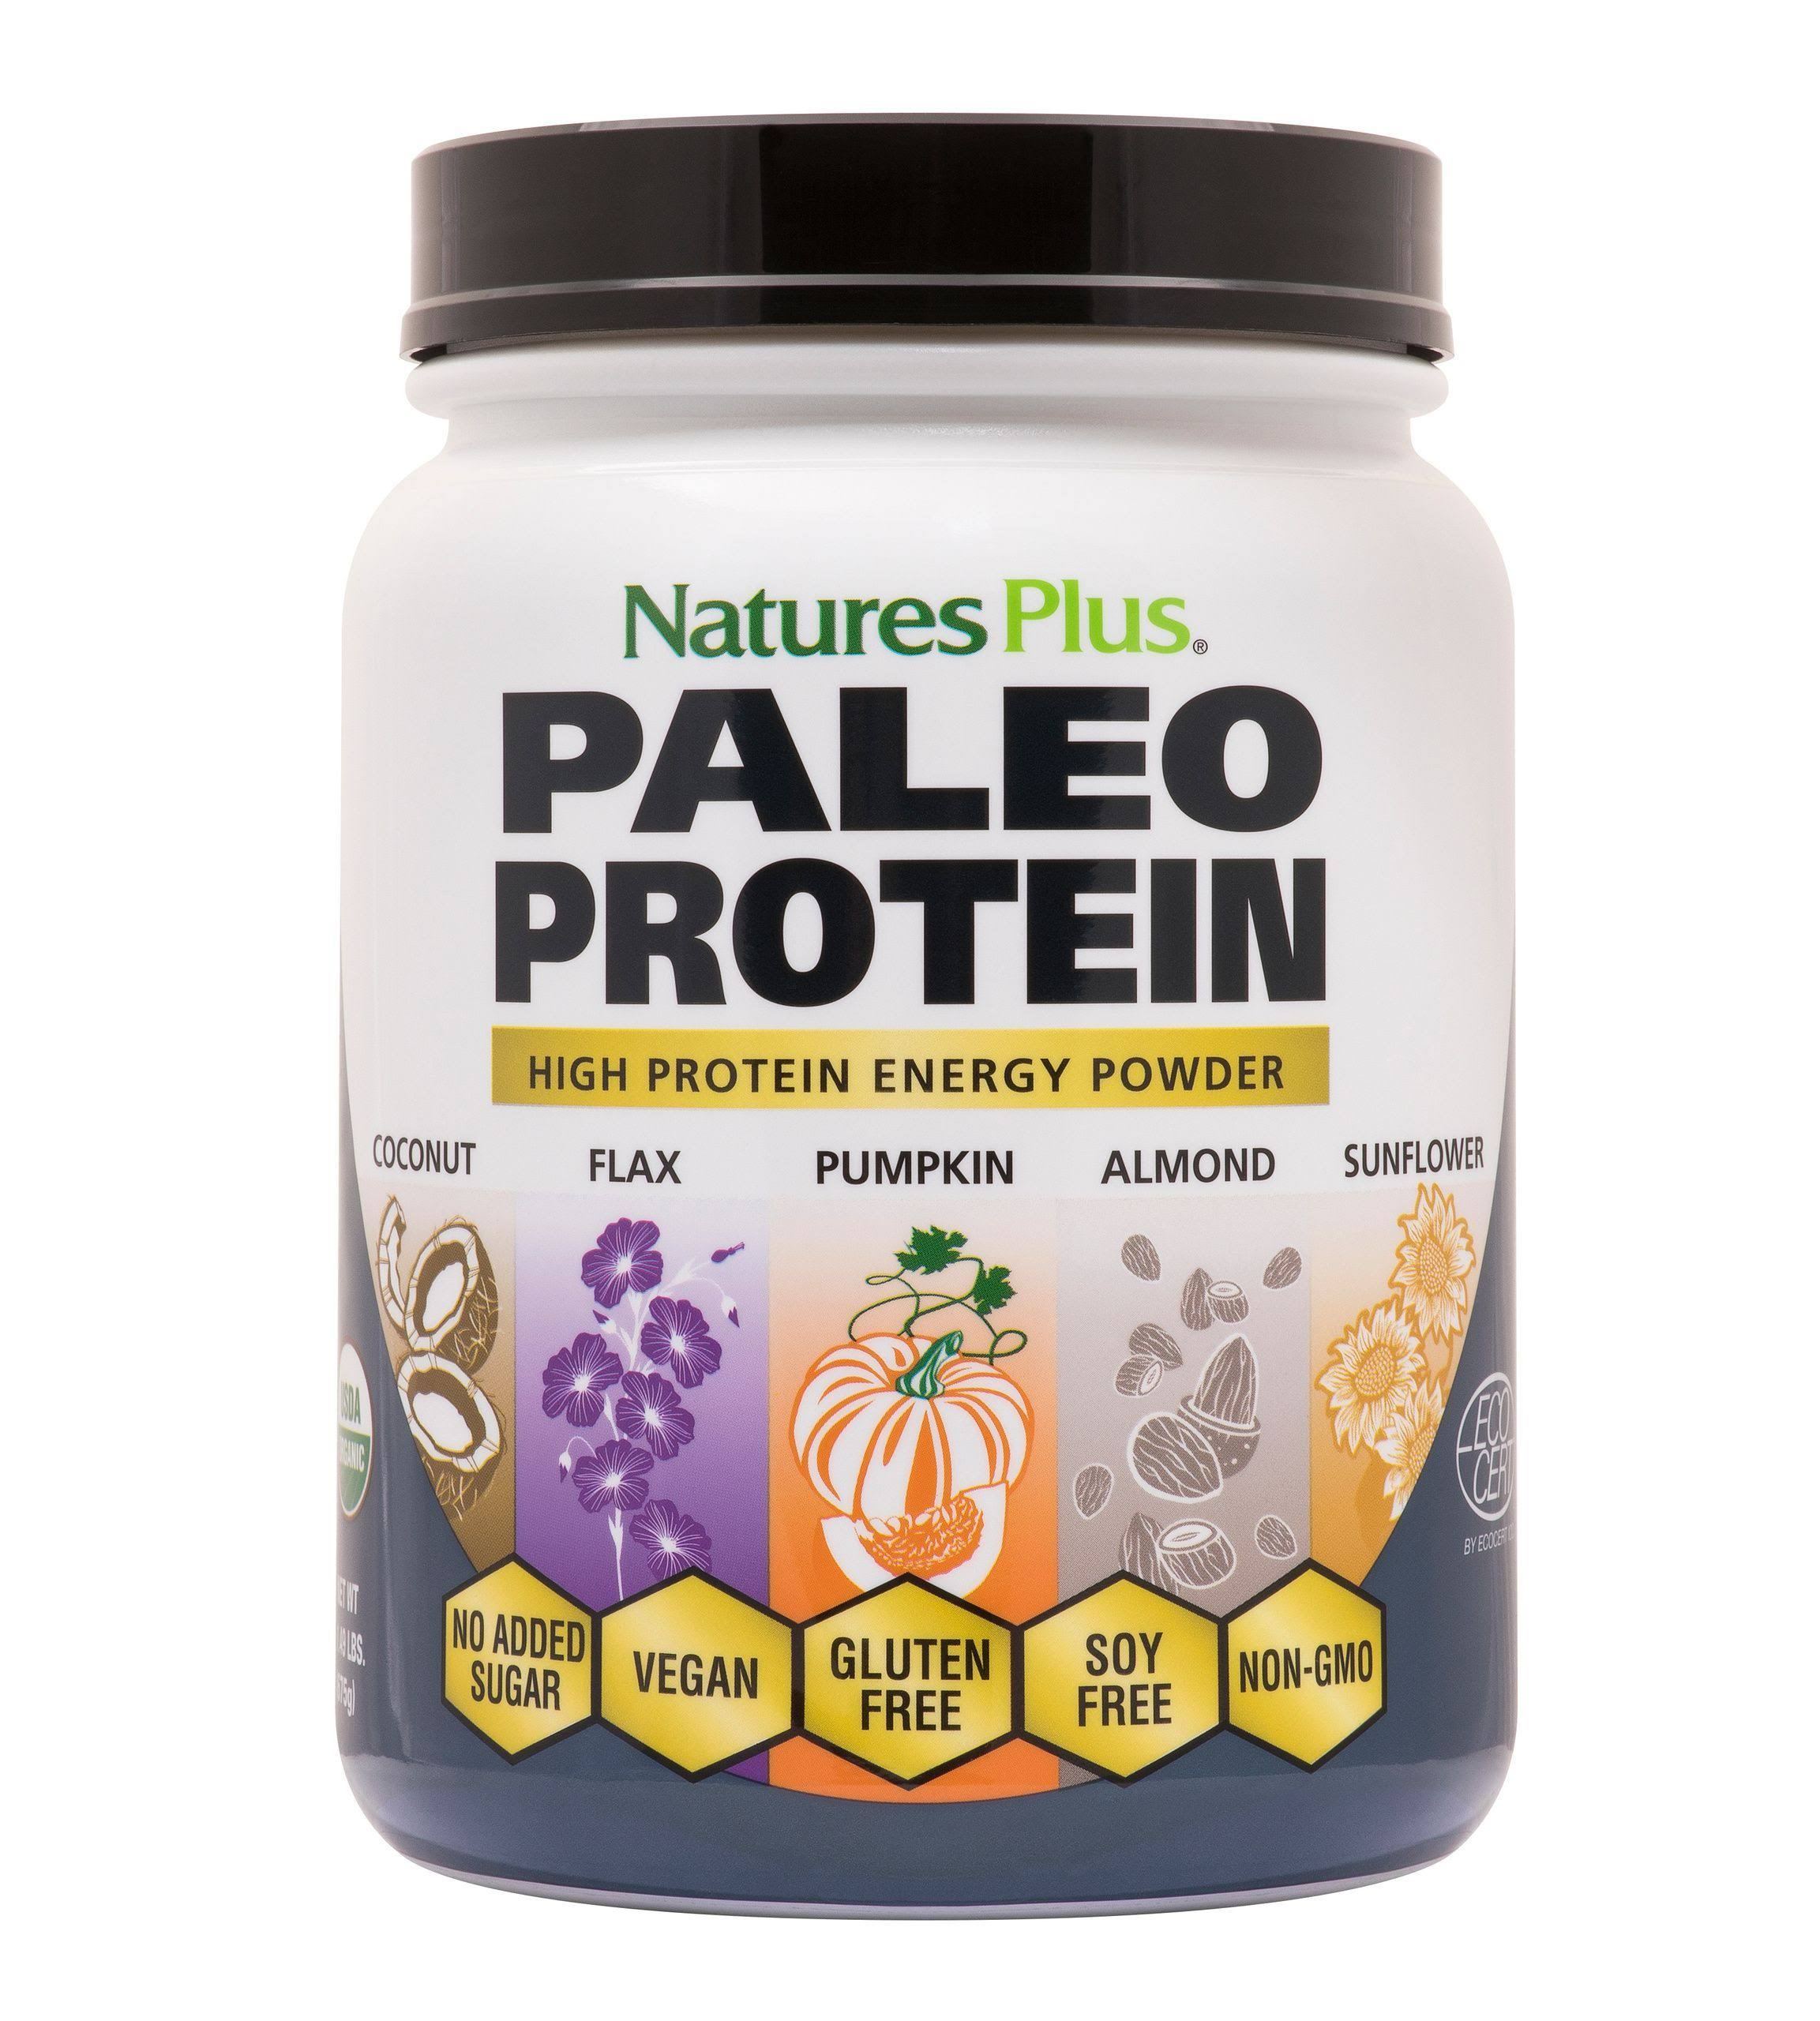 Natures Plus Organic Paleo High Protein Energy Powder - 1.49 lbs